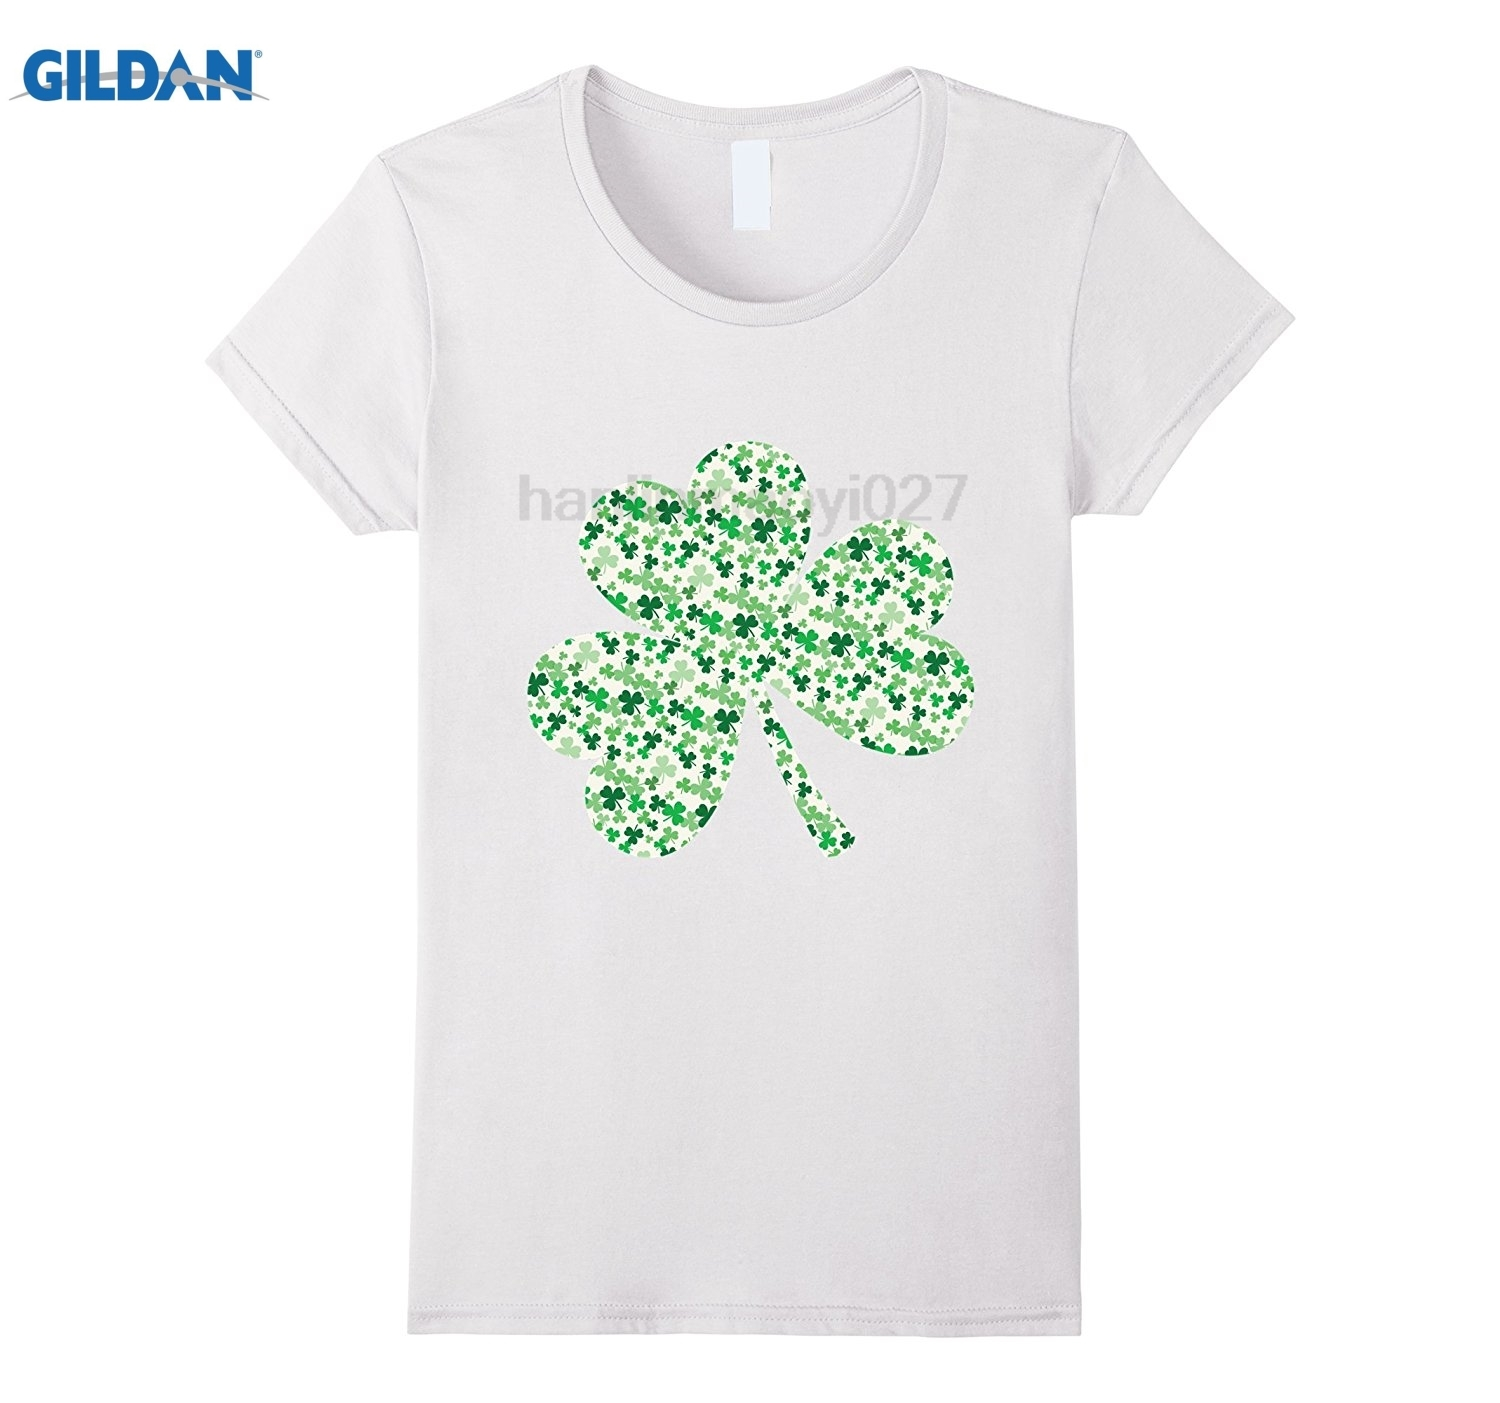 GILDAN Shamrock T Shirt - Saint Patricks Day ...